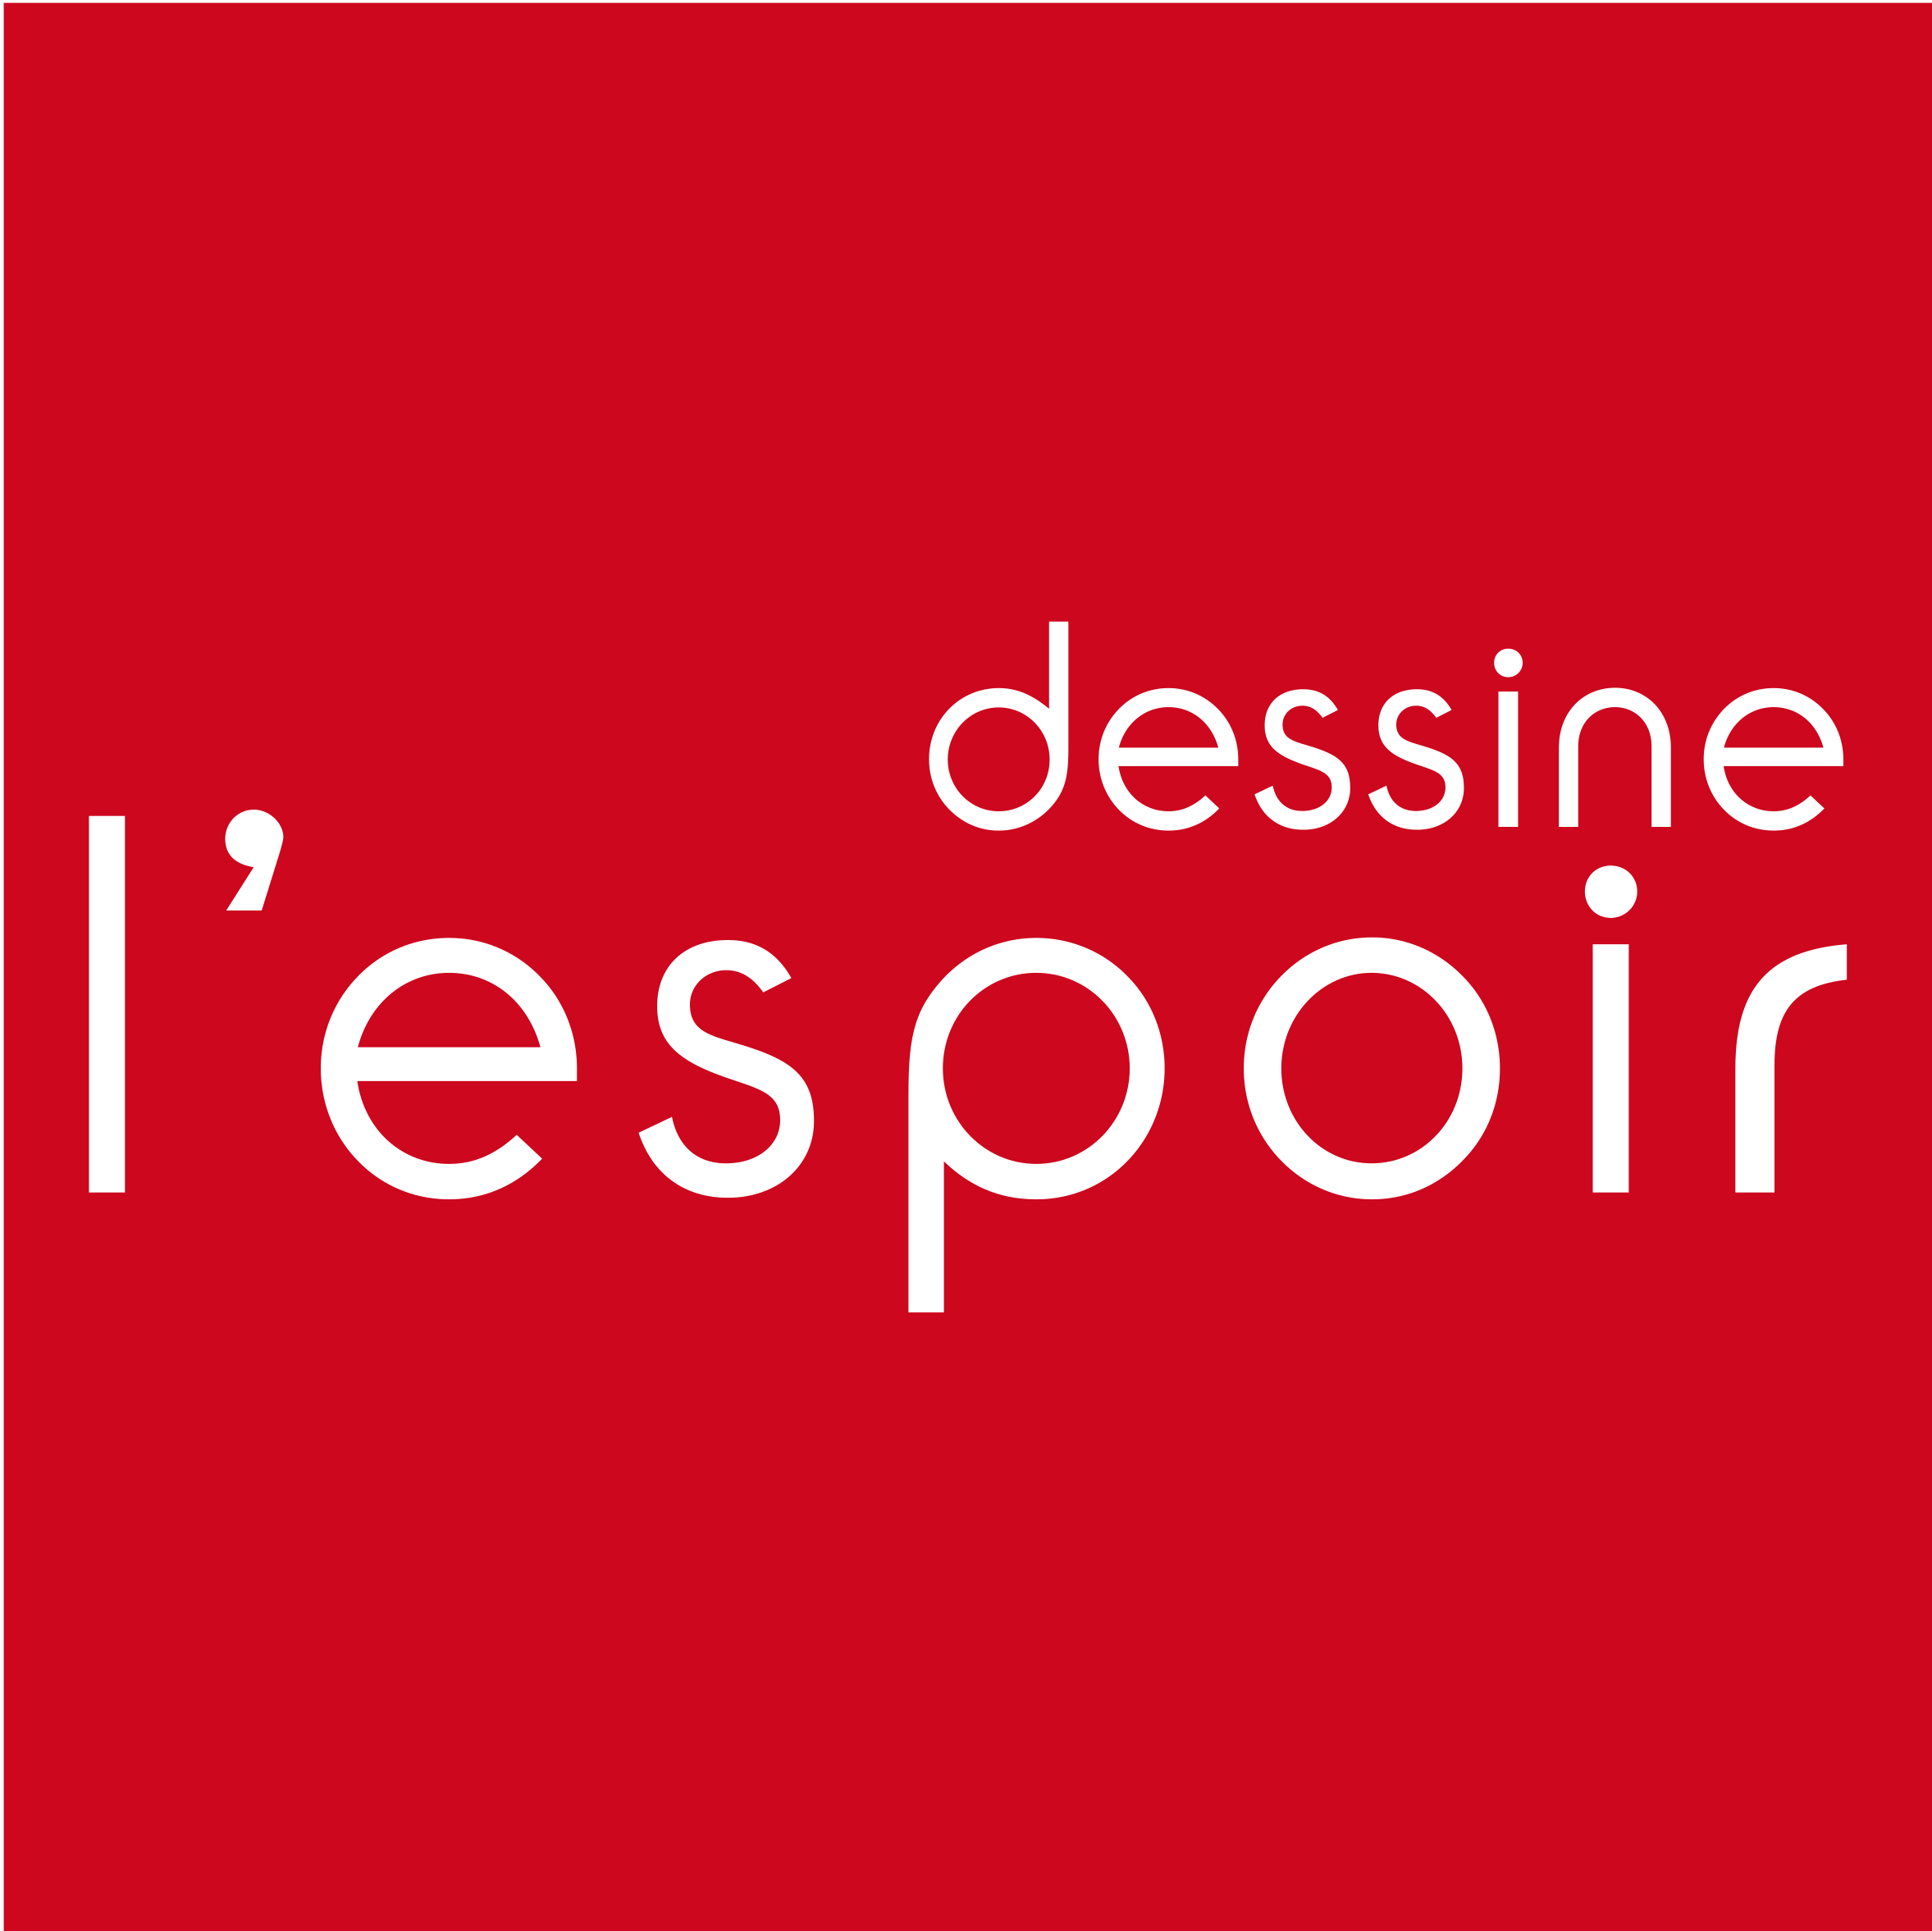 dessinelespoir